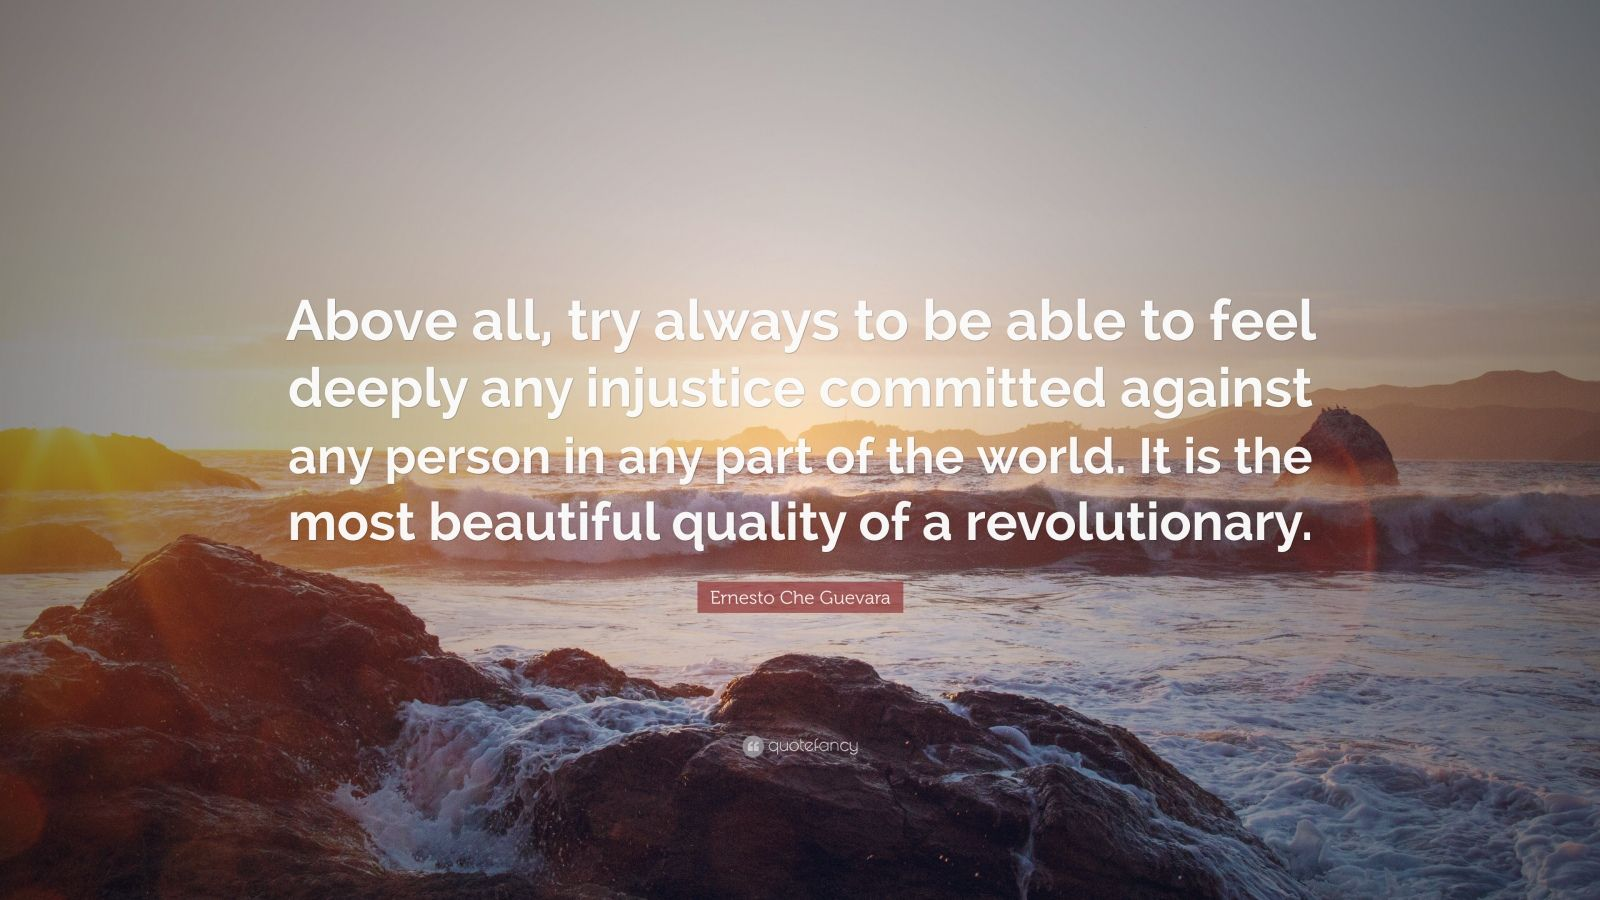 """Ernesto Che Guevara Quote: """"Above all, try always to be able to feel deeply any injustice committed against any person in any part of the world. It is the most beautiful quality of a revolutionary."""""""